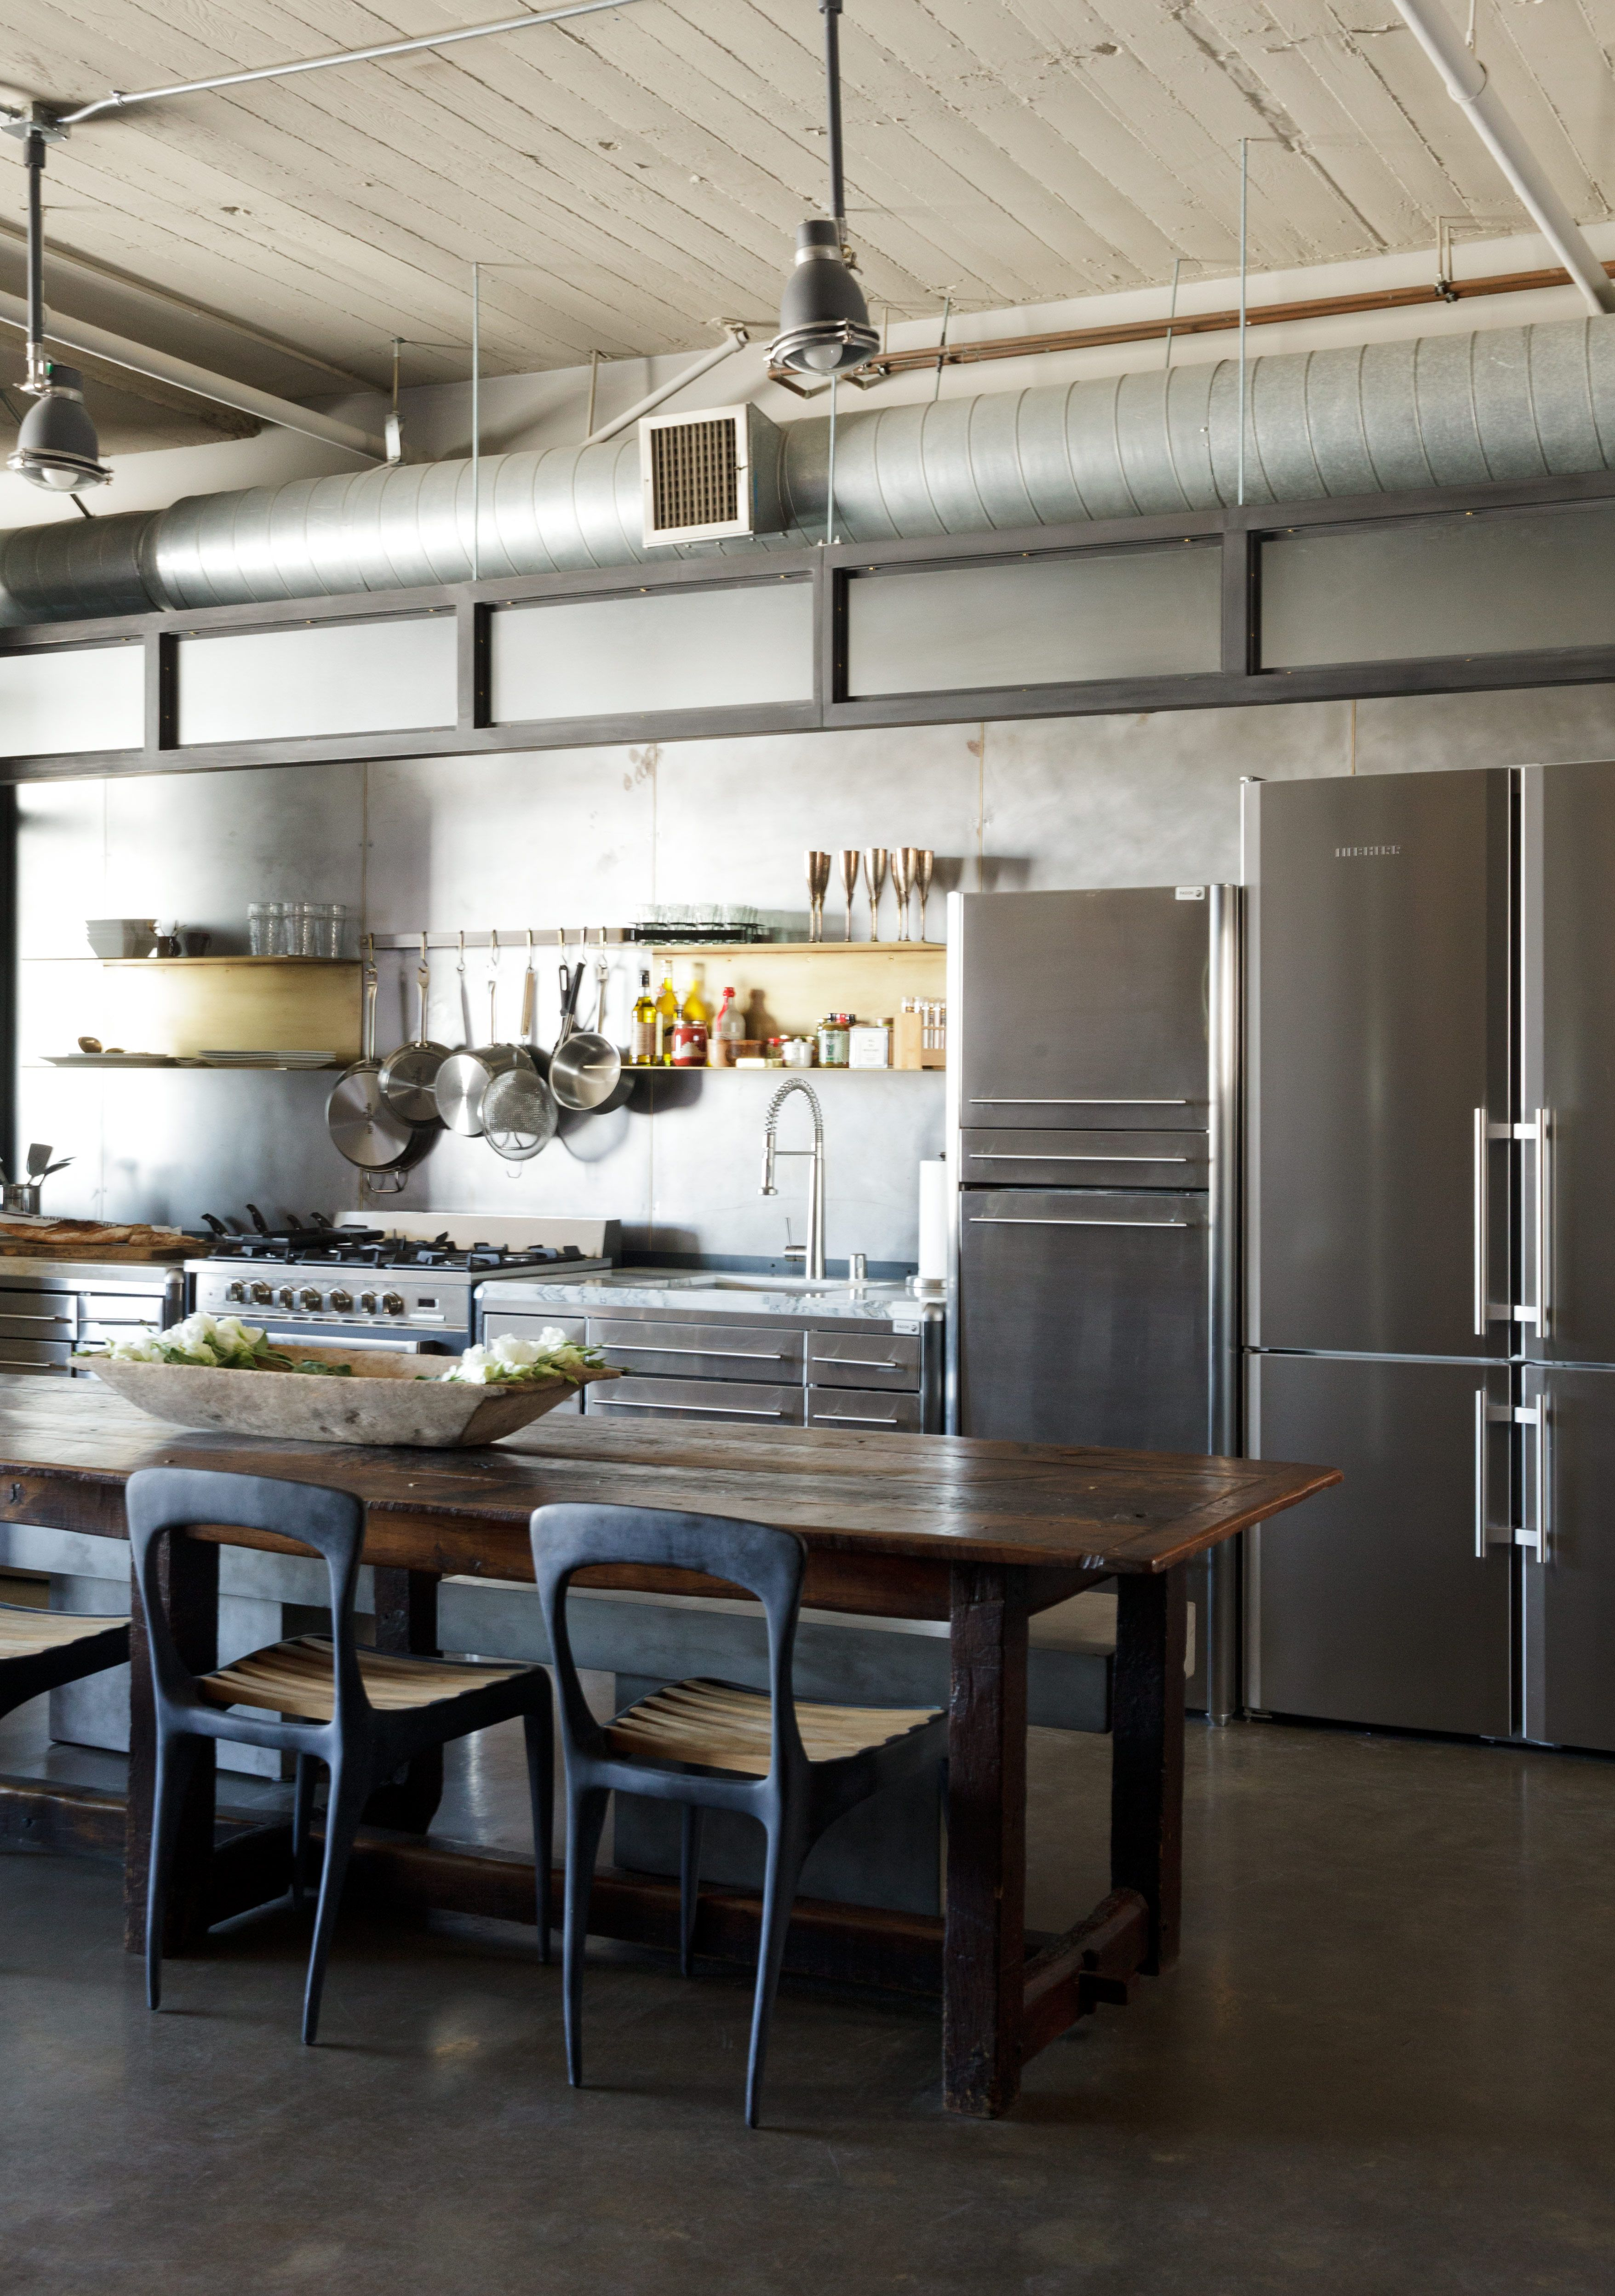 Modern Los Angeles loft kitchen renovation with stainless steel ...